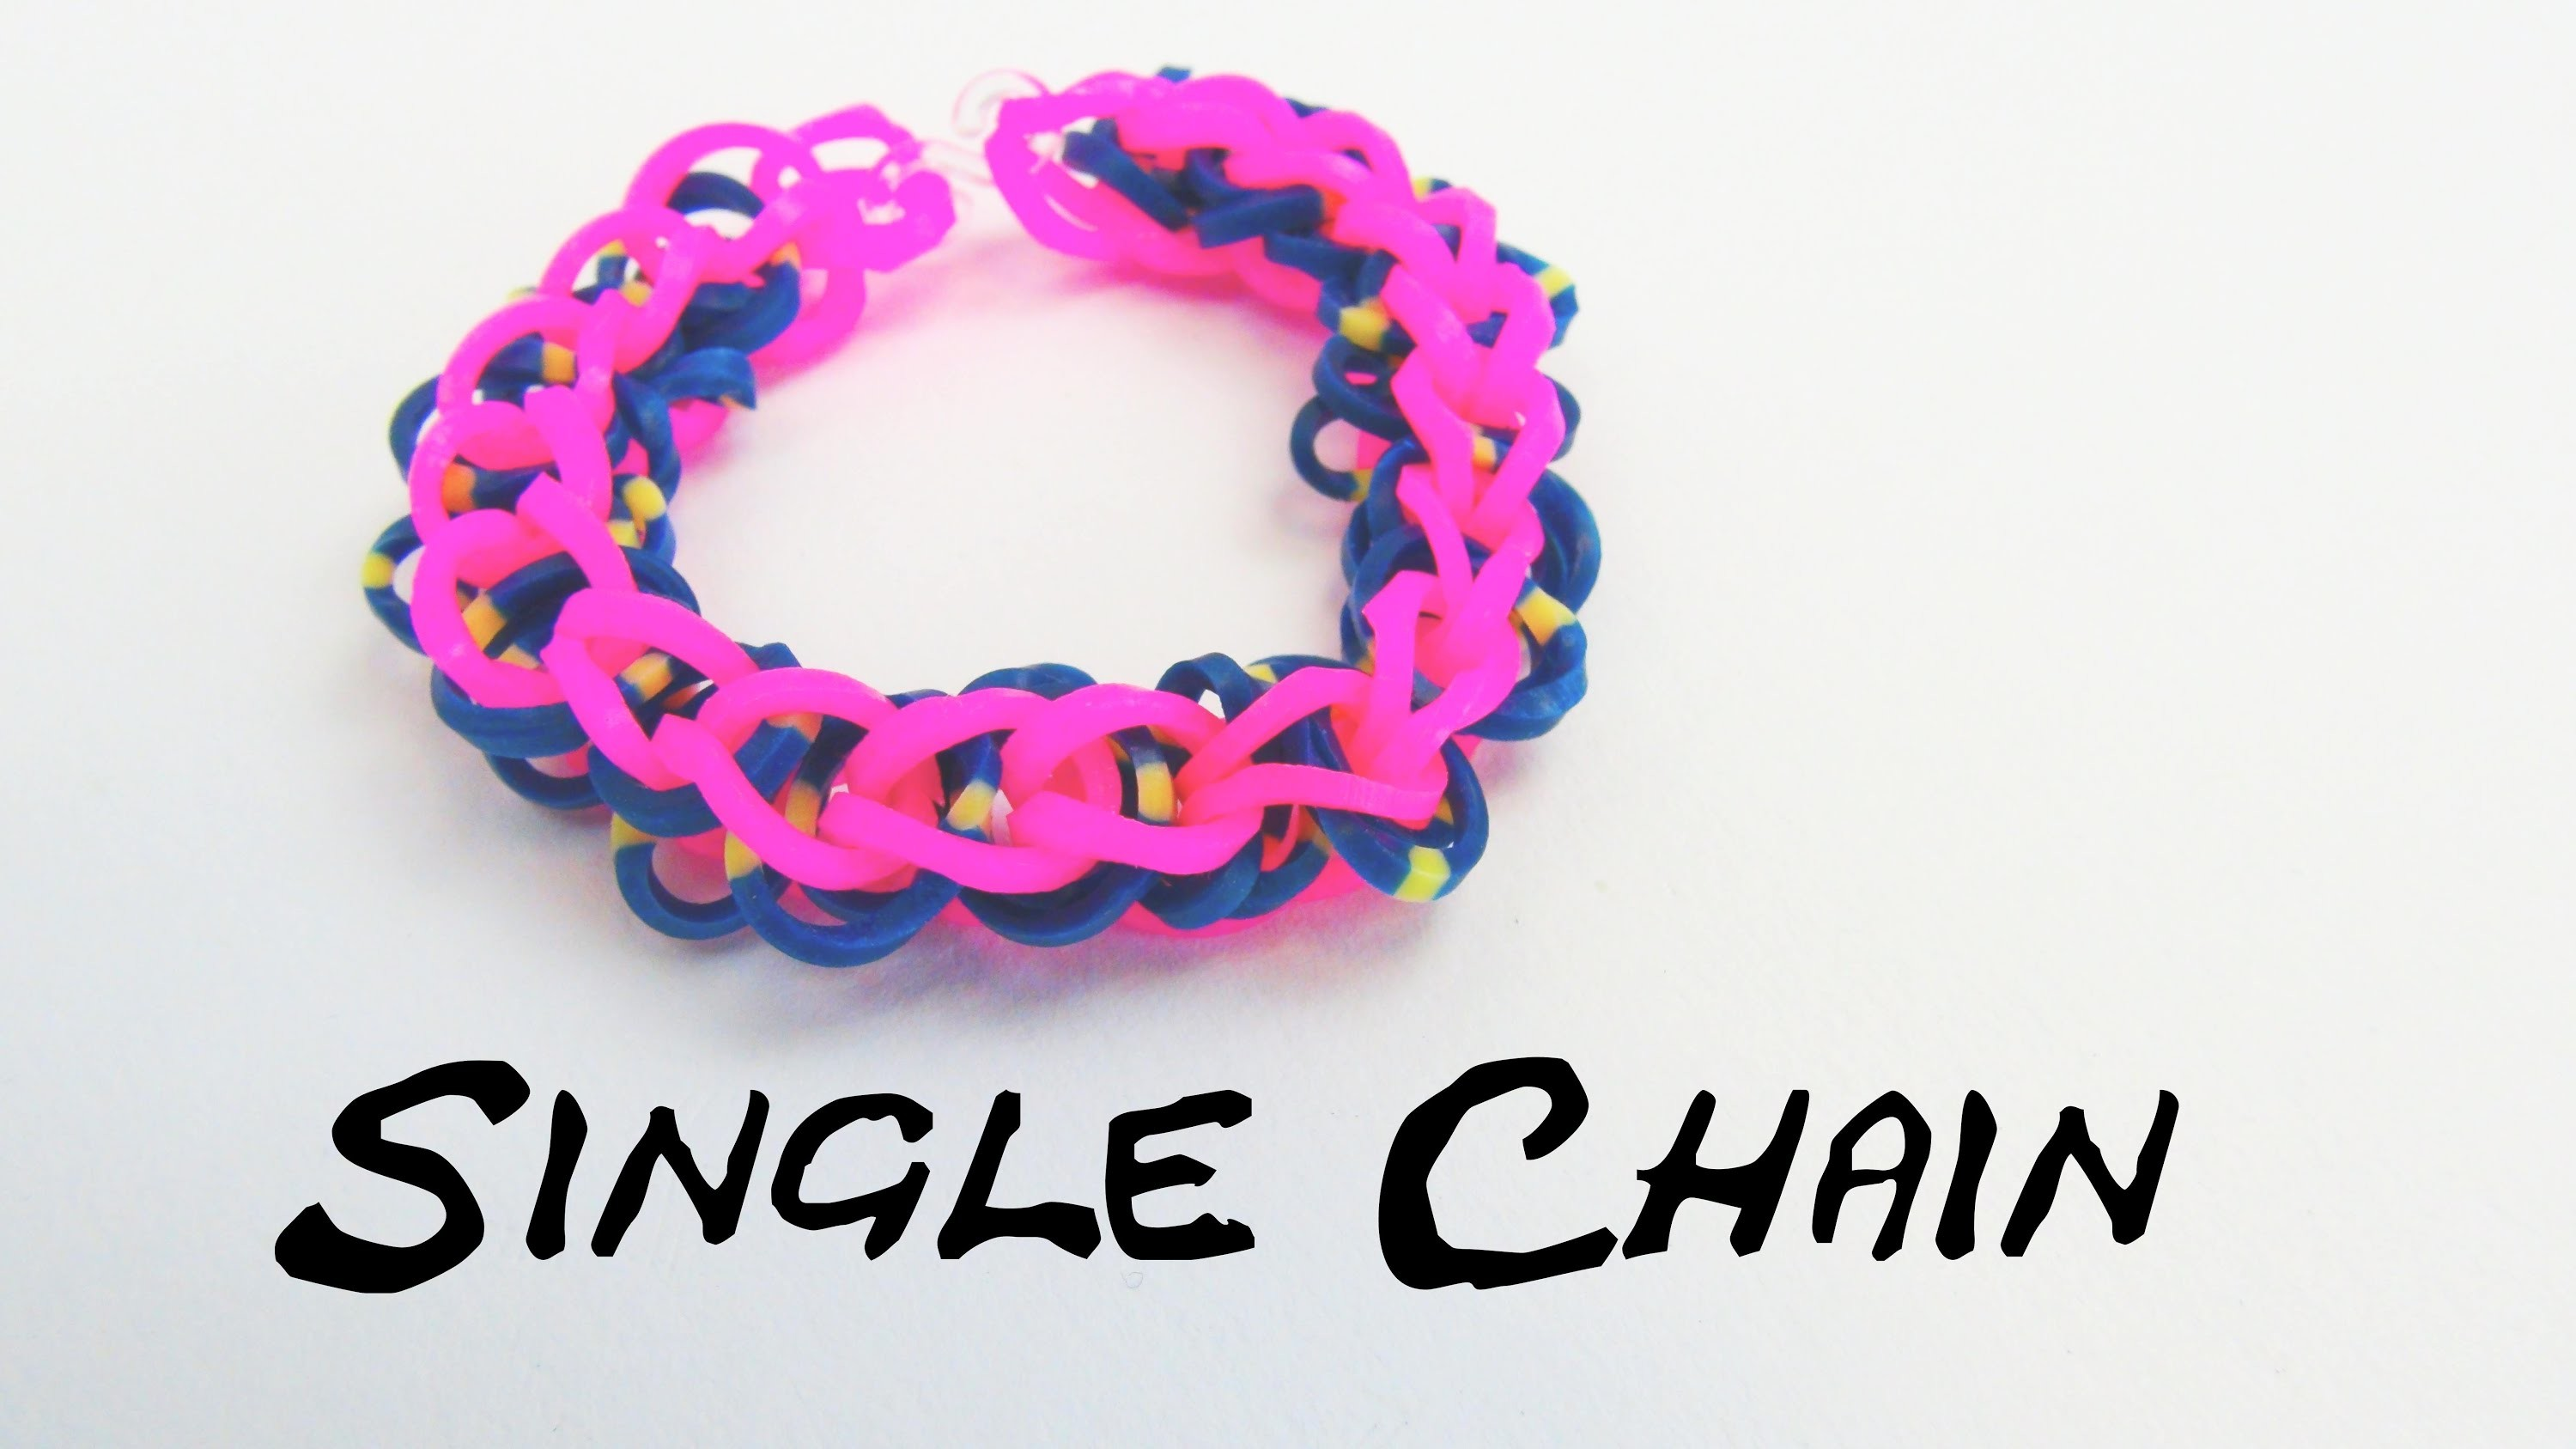 Rainbow Loom Single Chain Kreis Bracelet. Armband mit Kreisen DIY Anleitung | deutsch